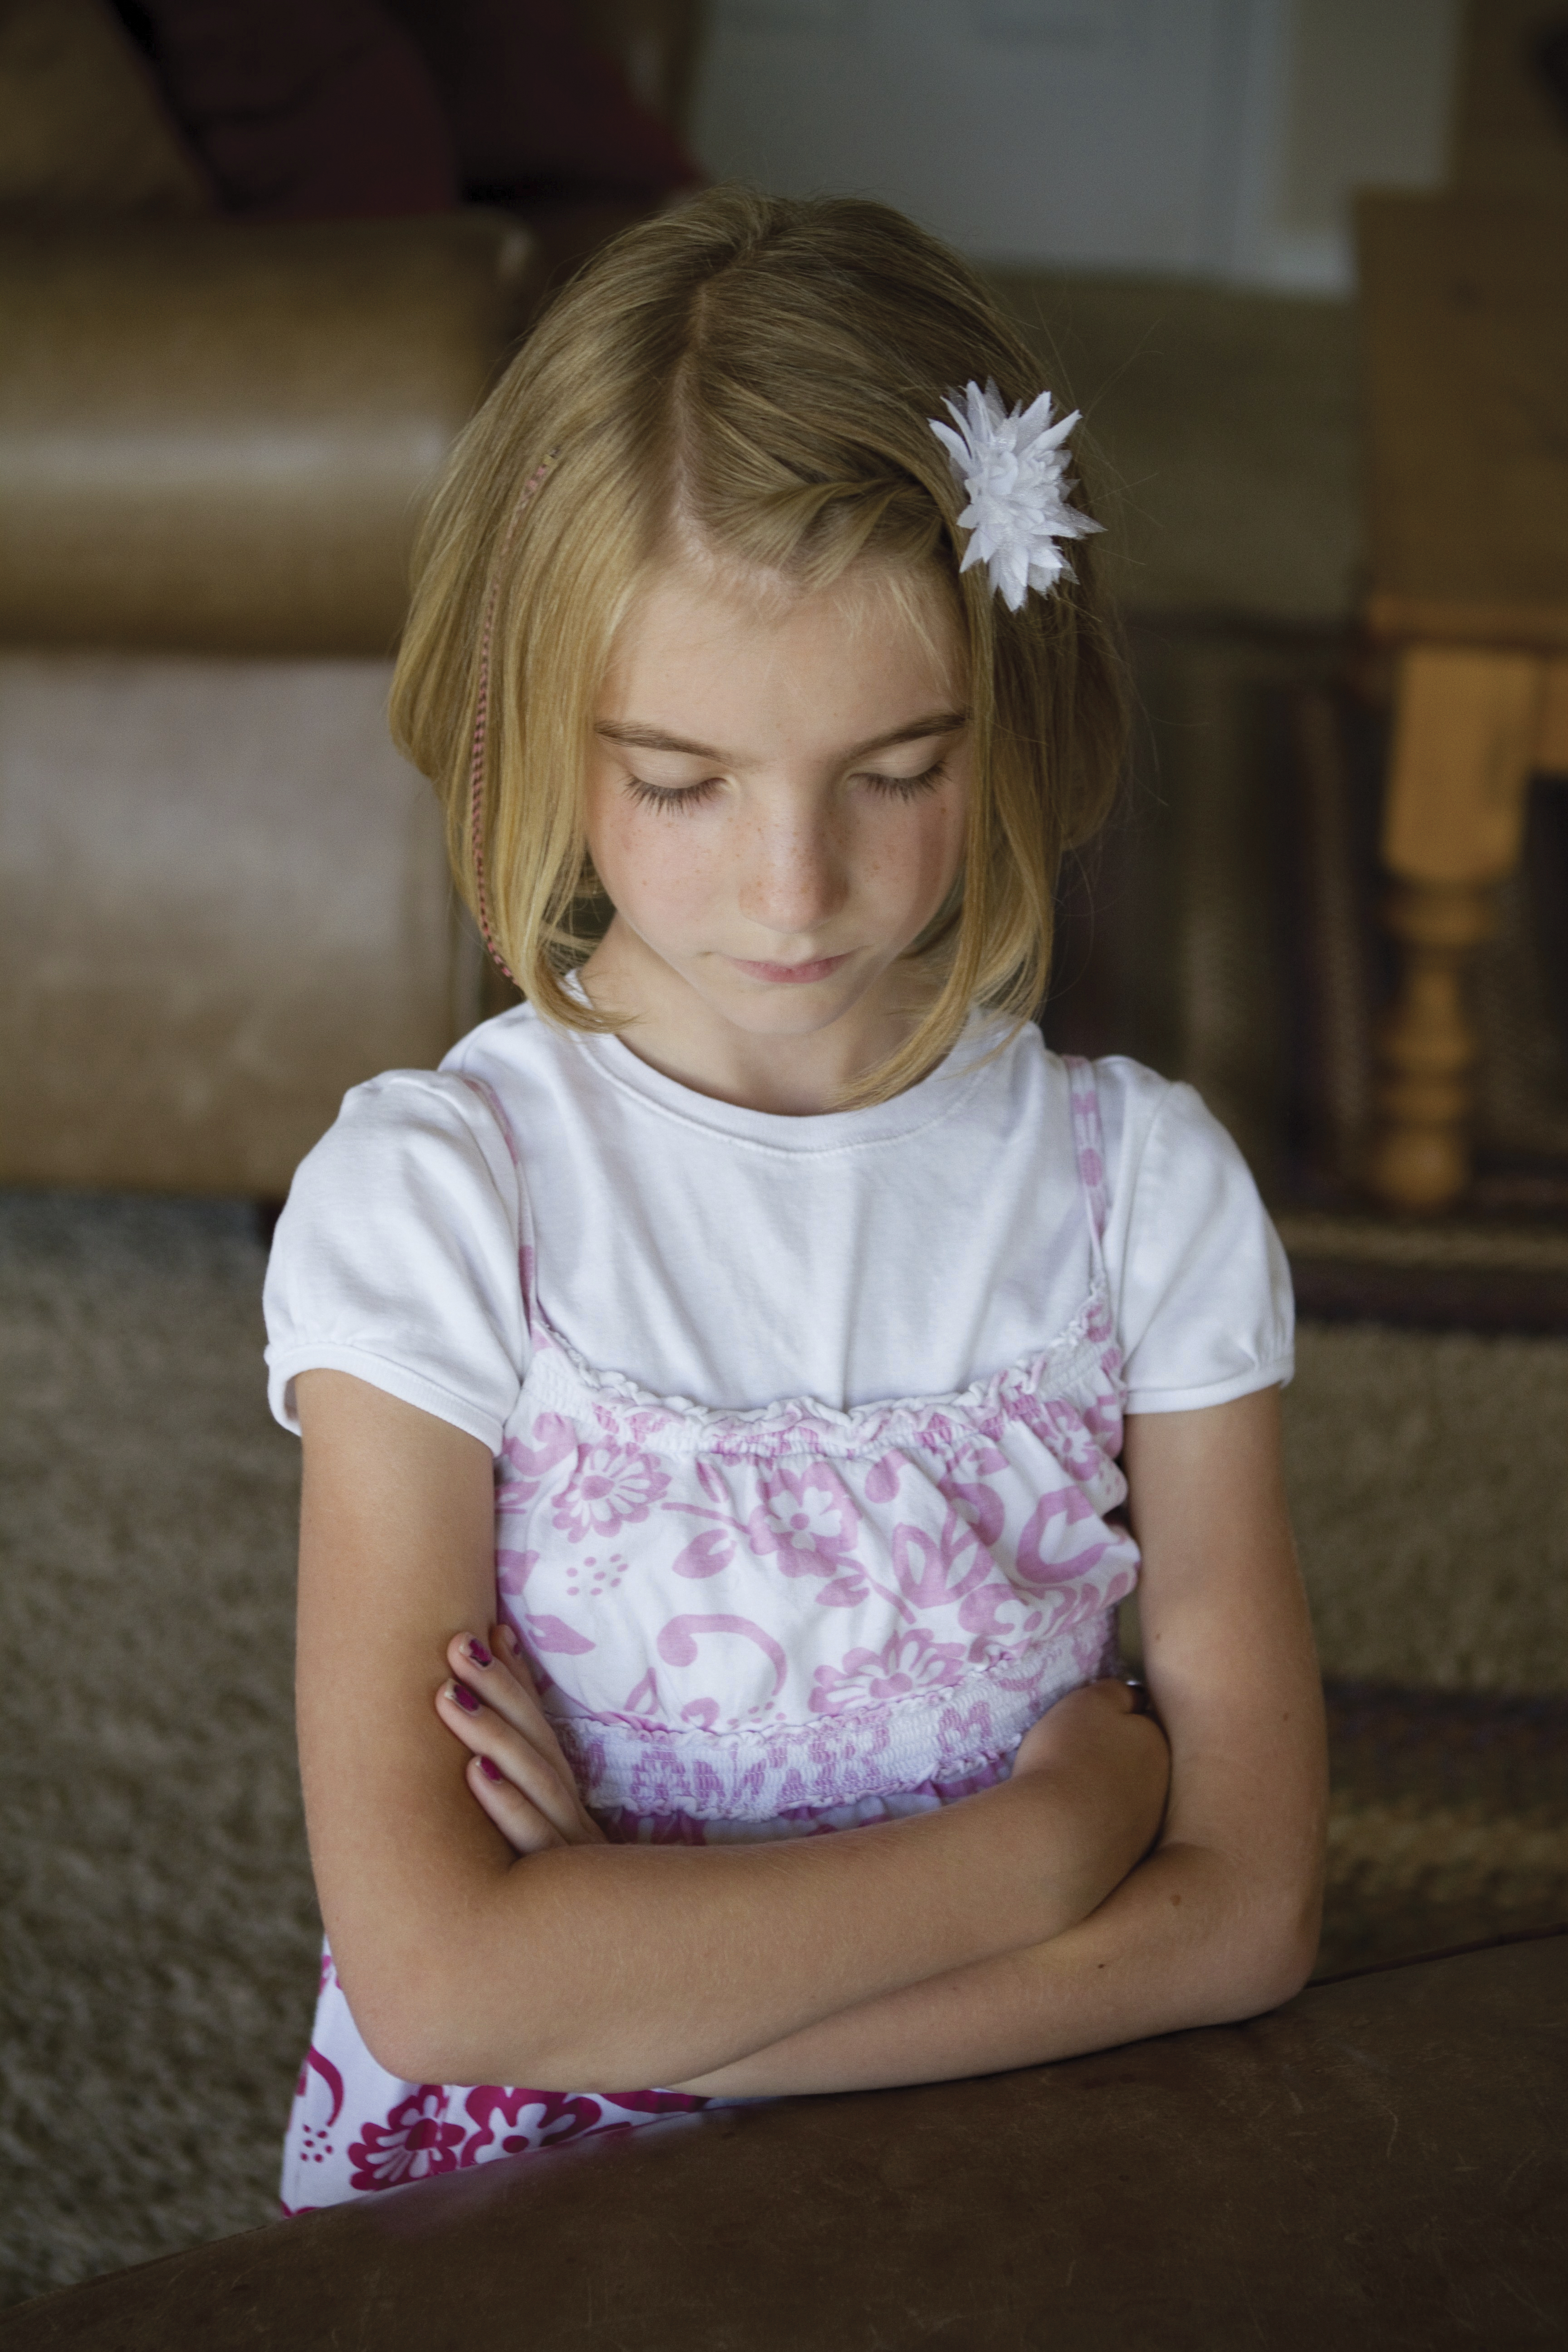 A young girl prays, kneeling in the living room.